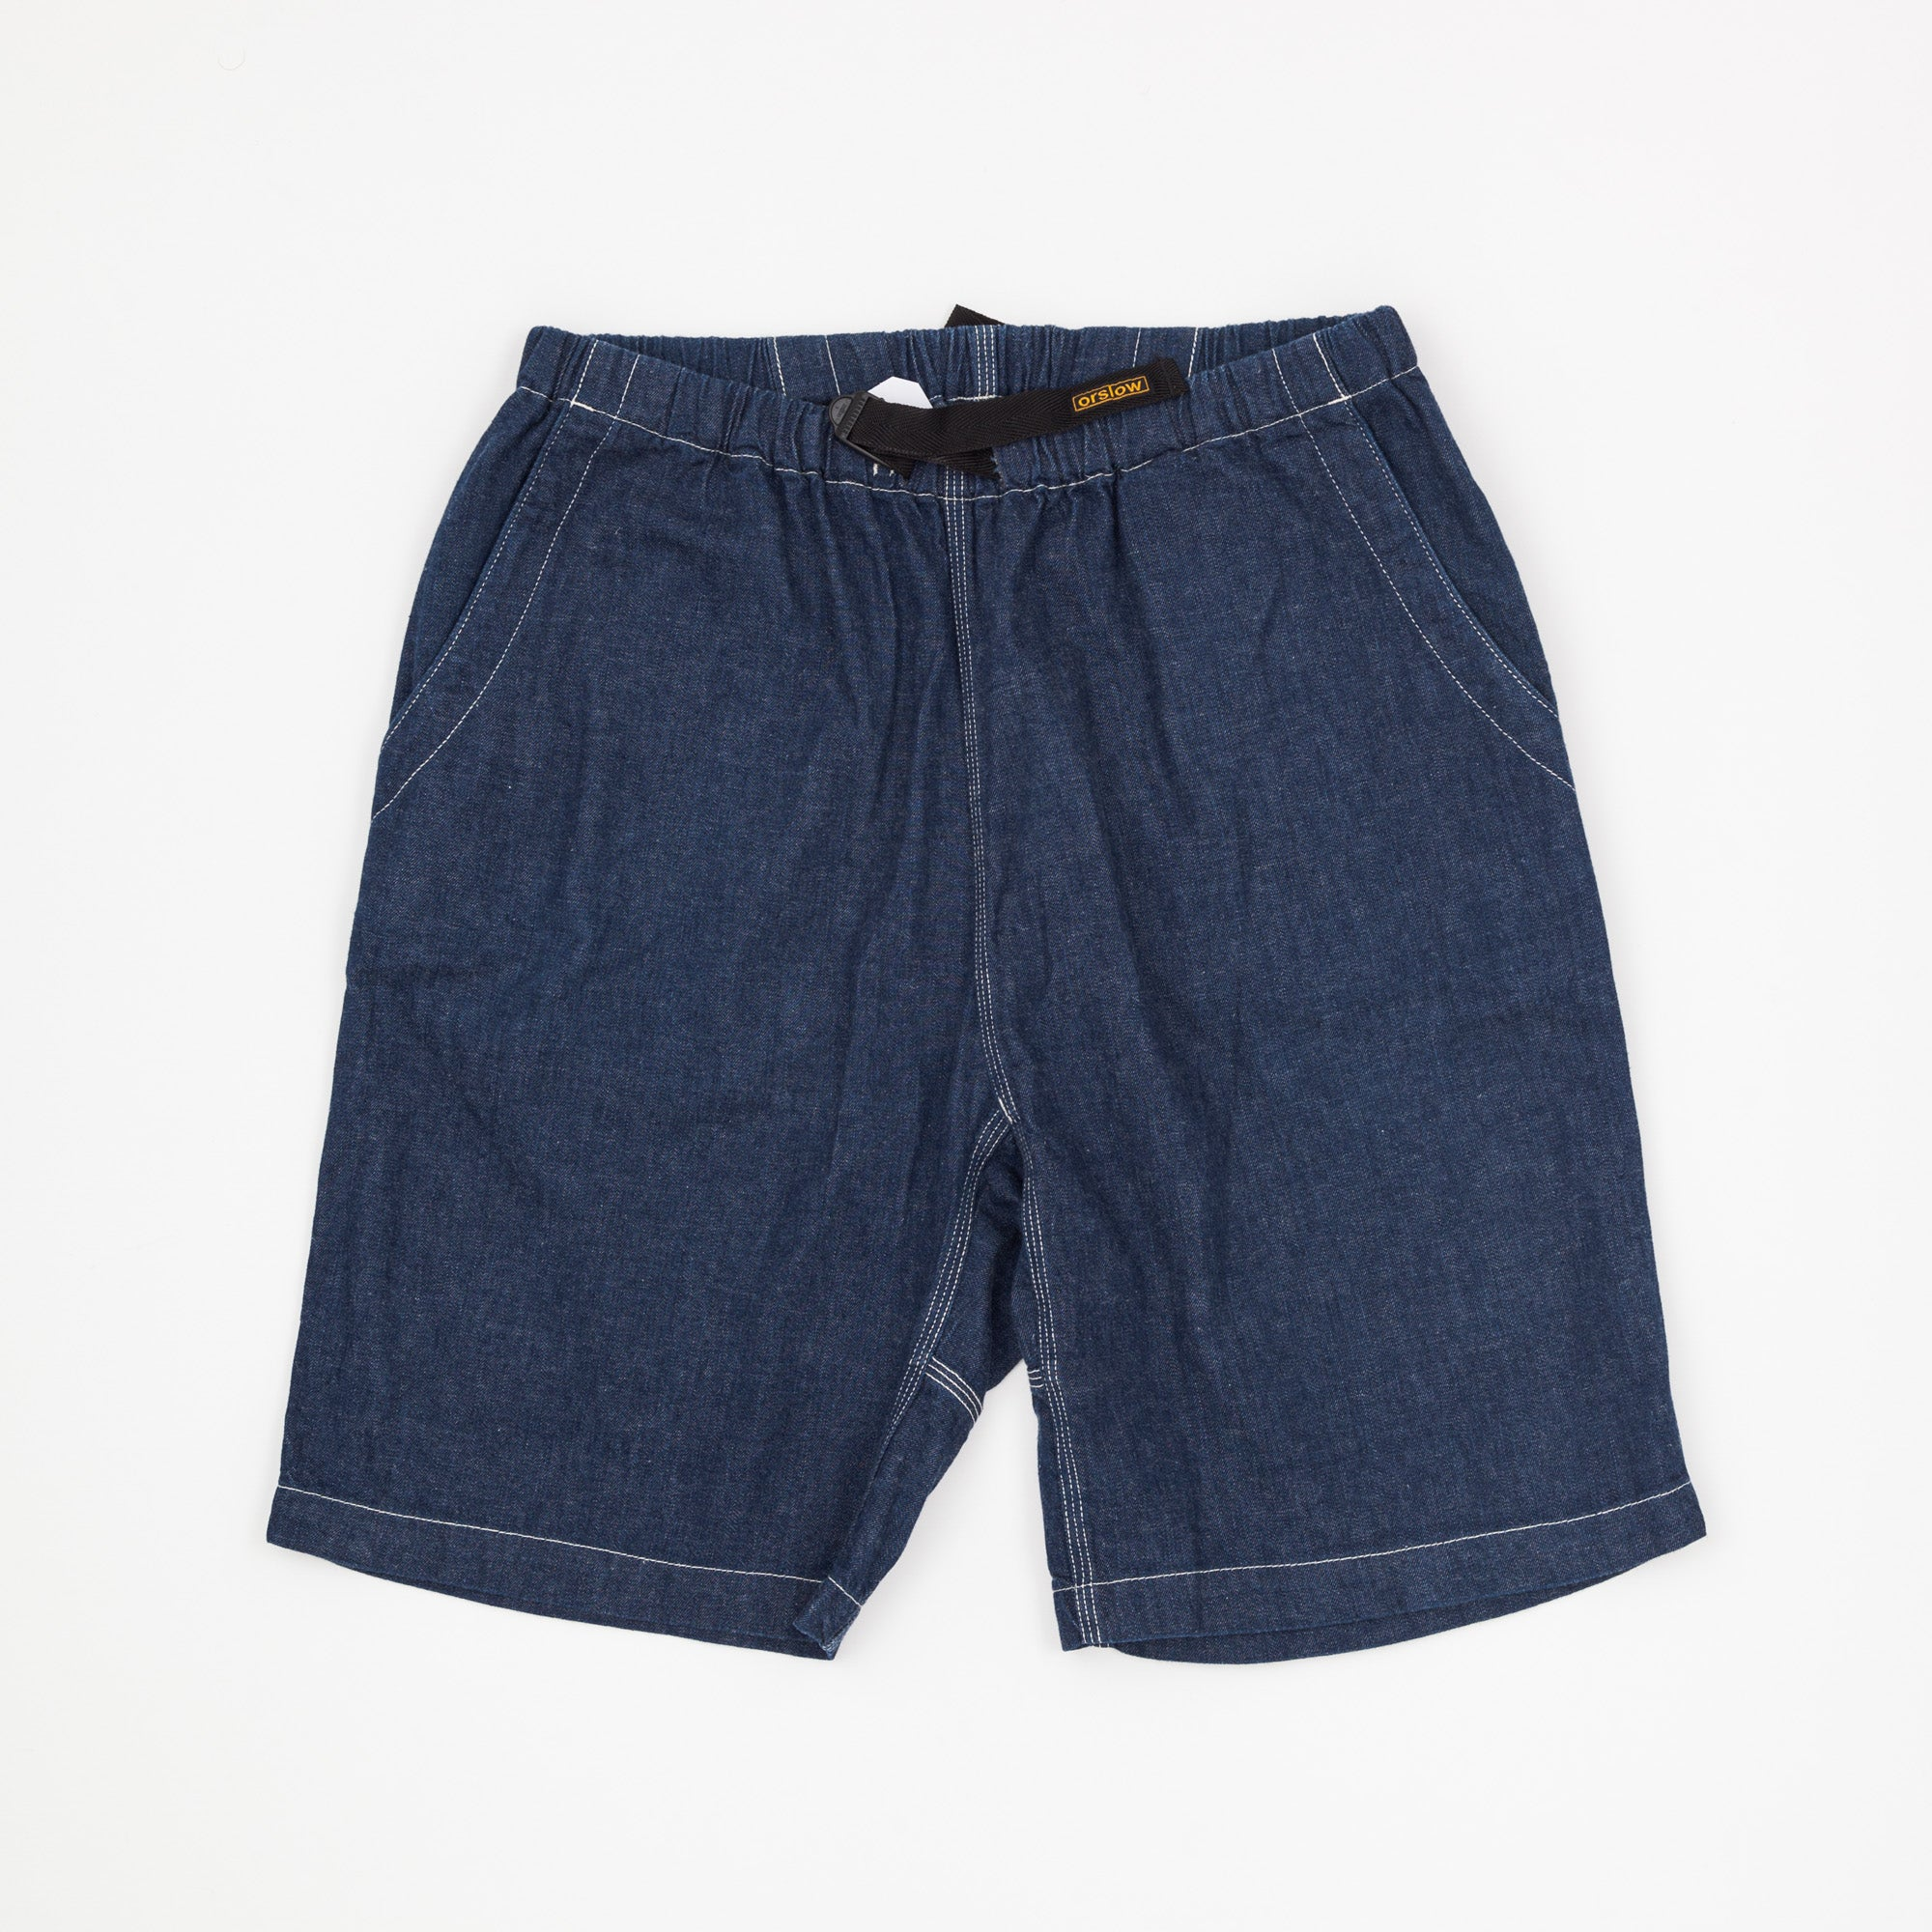 Orslow Denim Climbing Shorts